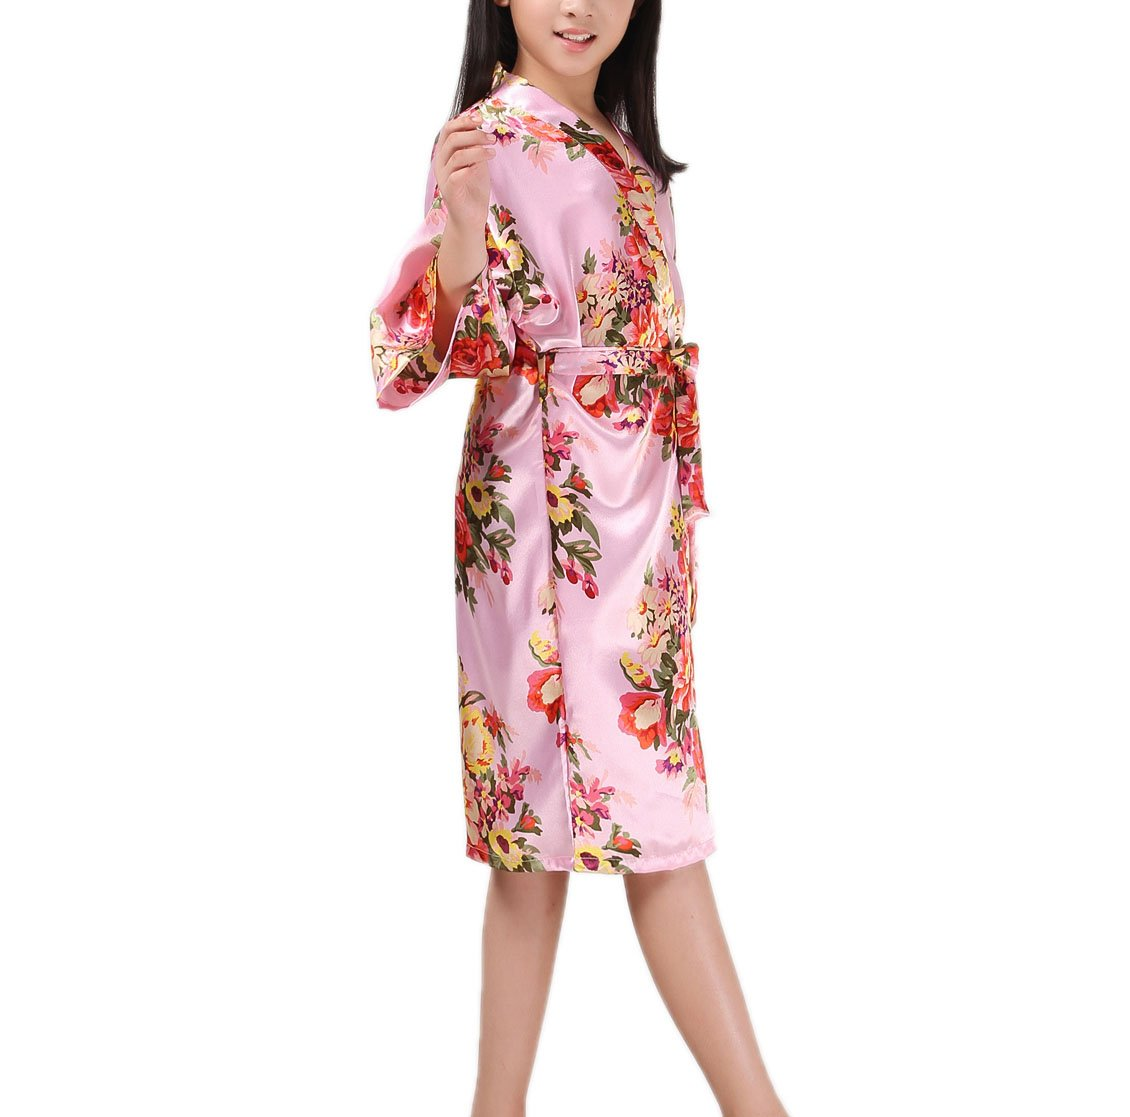 f8f2c4529b3 Mobarta Girls  Floral Satin Kimono Robe Flower Girl Bathrobe Getting Ready  Robe for Wedding Spa Party Birthday Gift